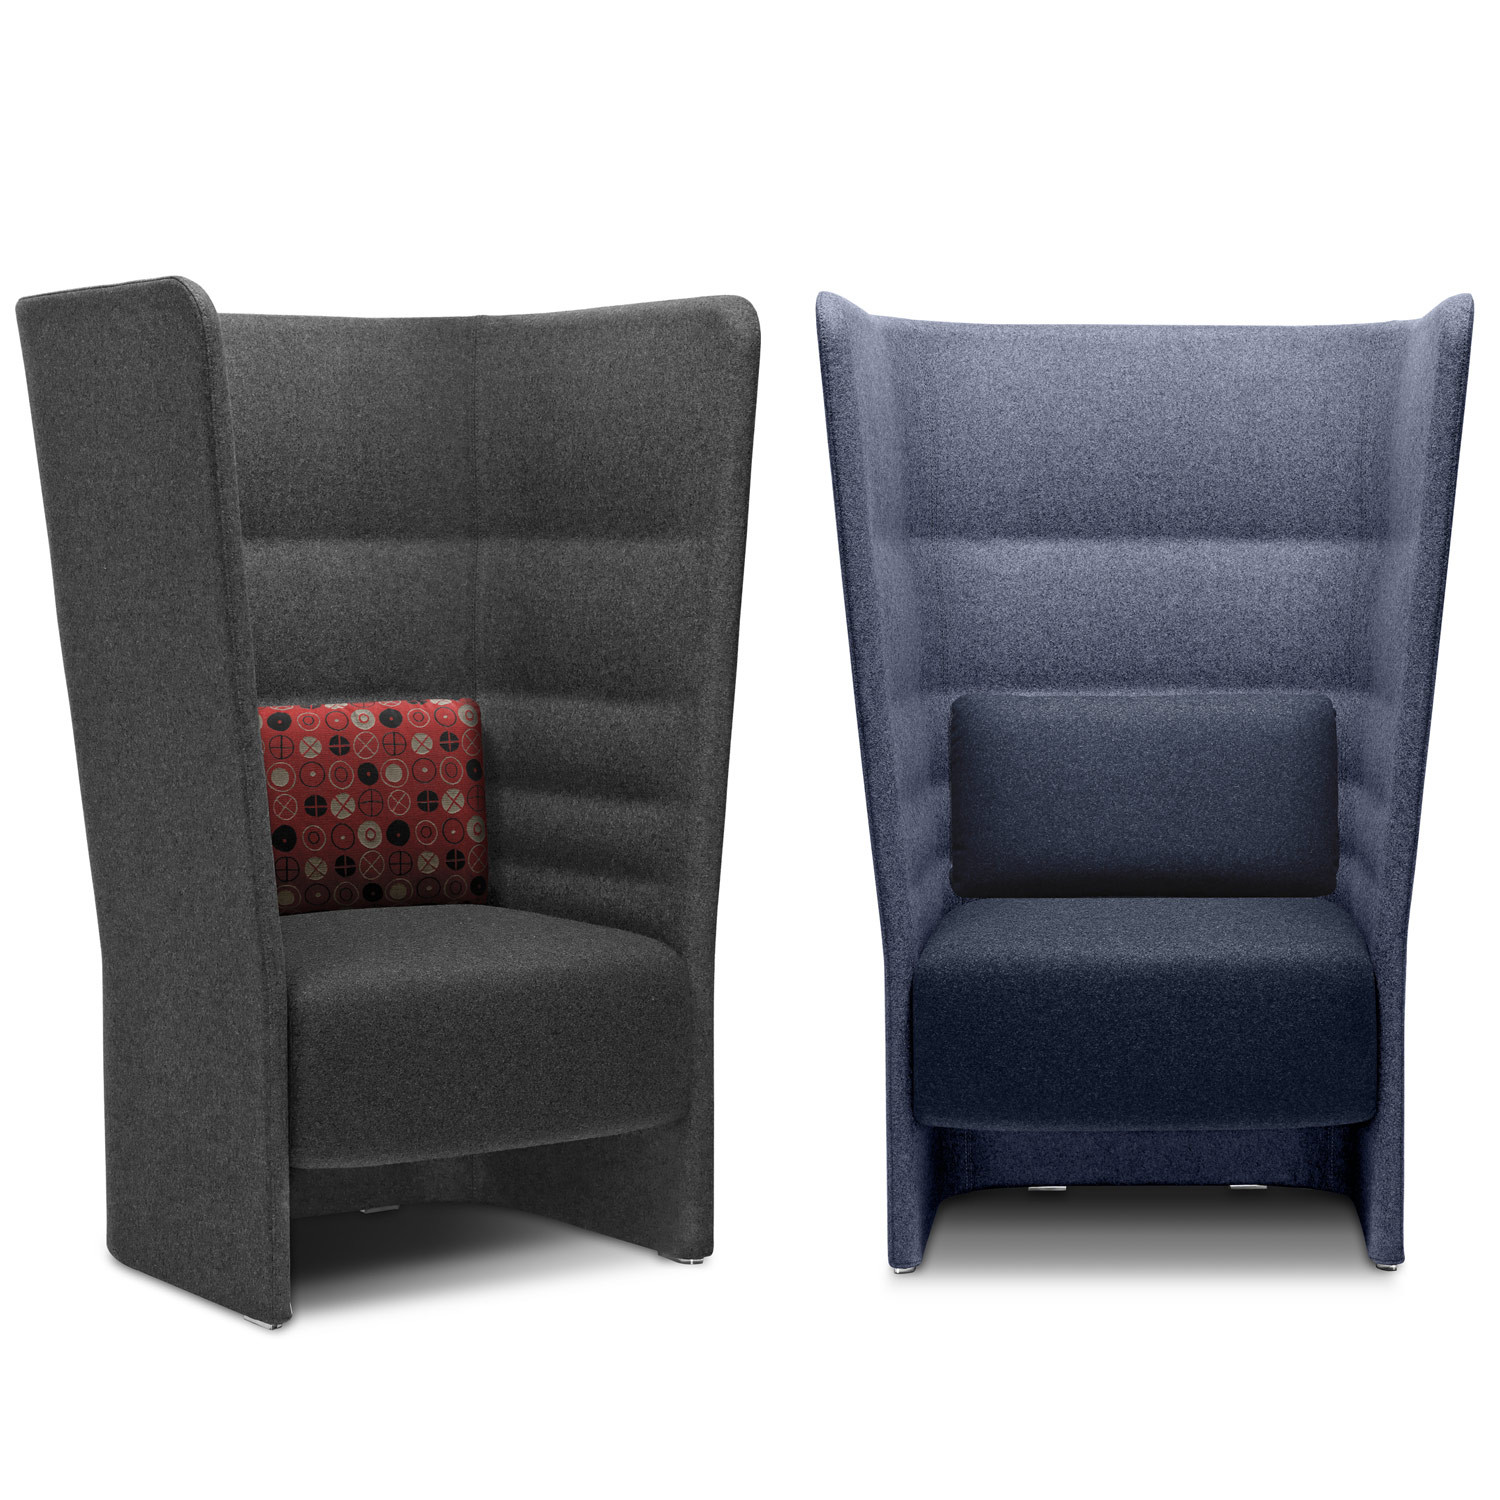 Cell 128 High Back Armchair | Apres Furniture